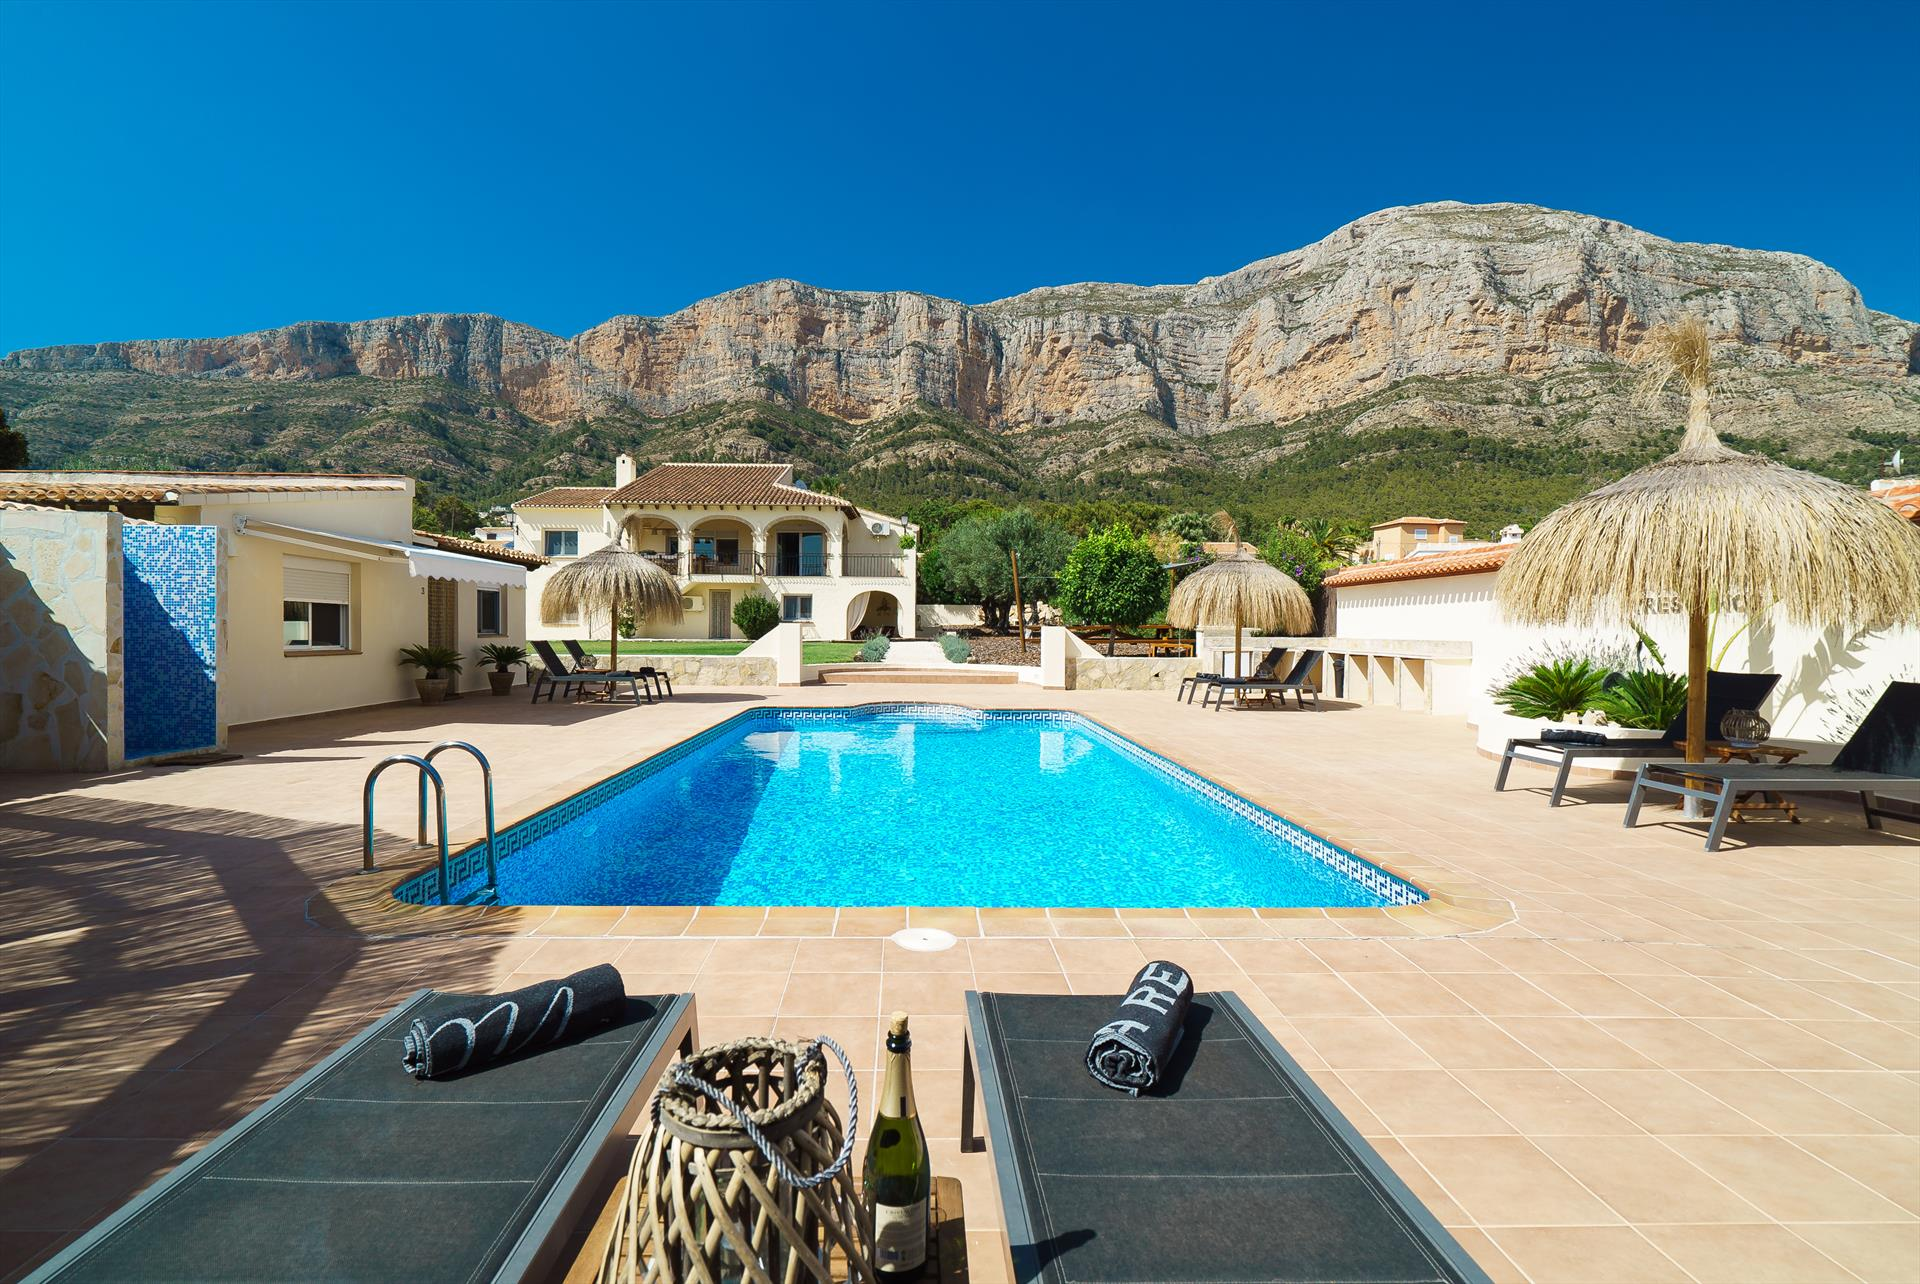 Tres Ninos 6 pax, Wonderful and comfortable villa in Javea, on the Costa Blanca, Spain  with private pool for 6 persons.....